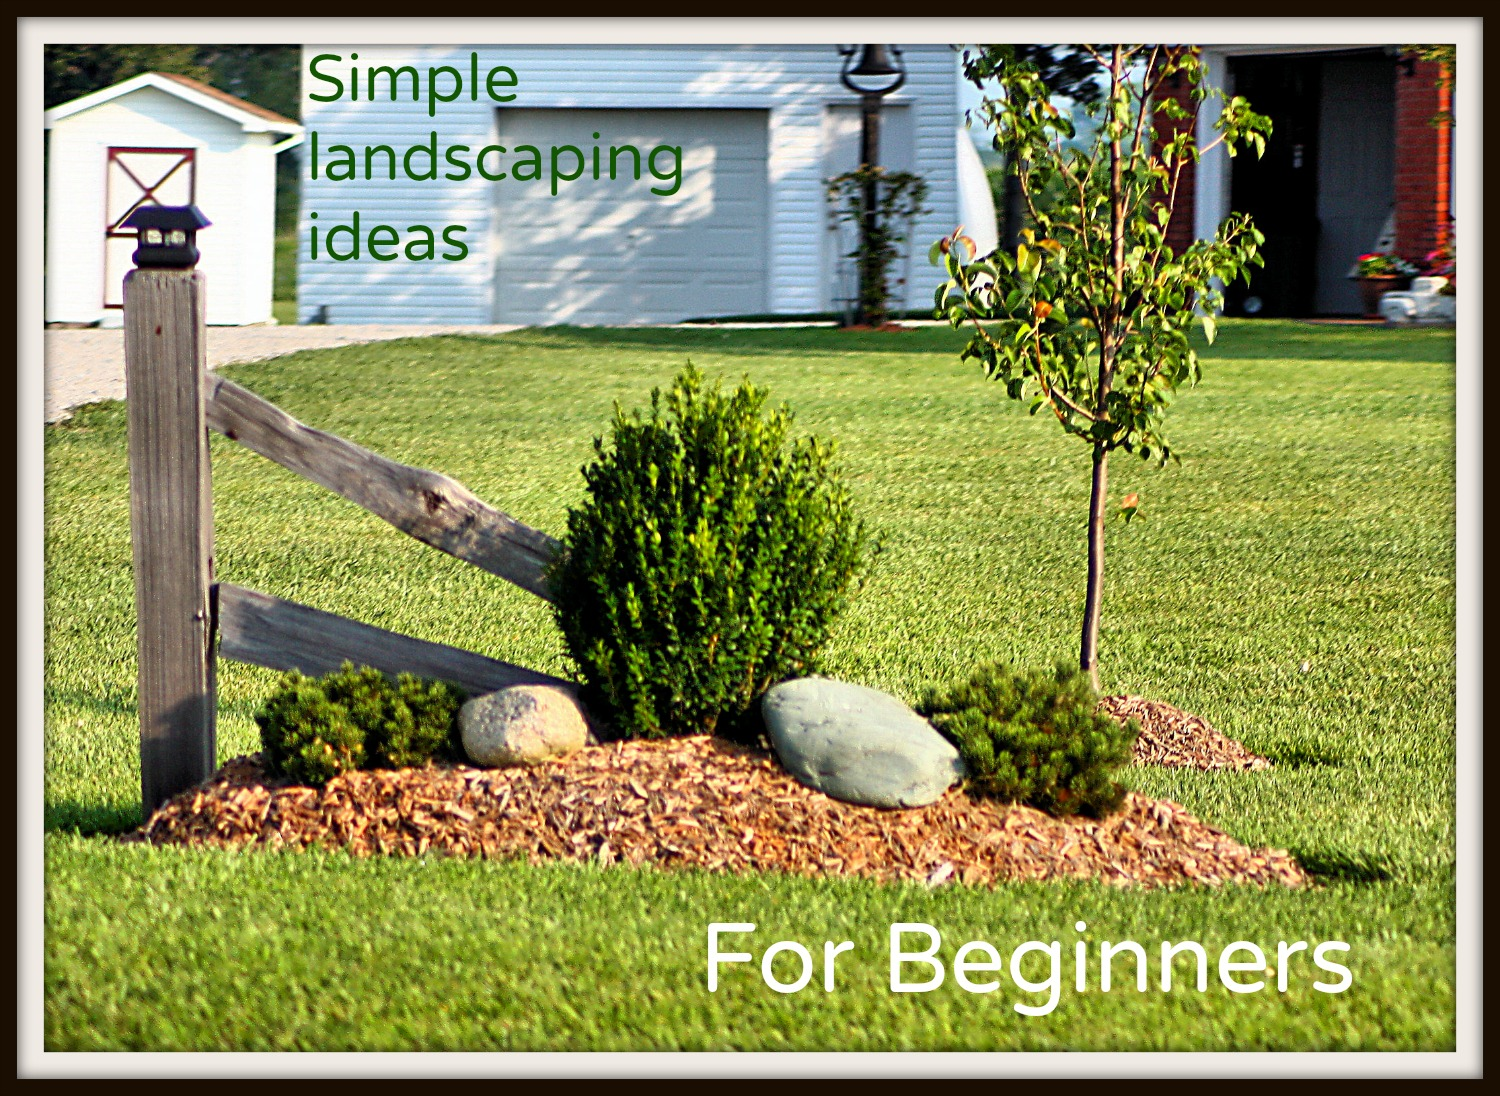 Simple landscaping ideas for beginners frador for Simple garden landscape ideas